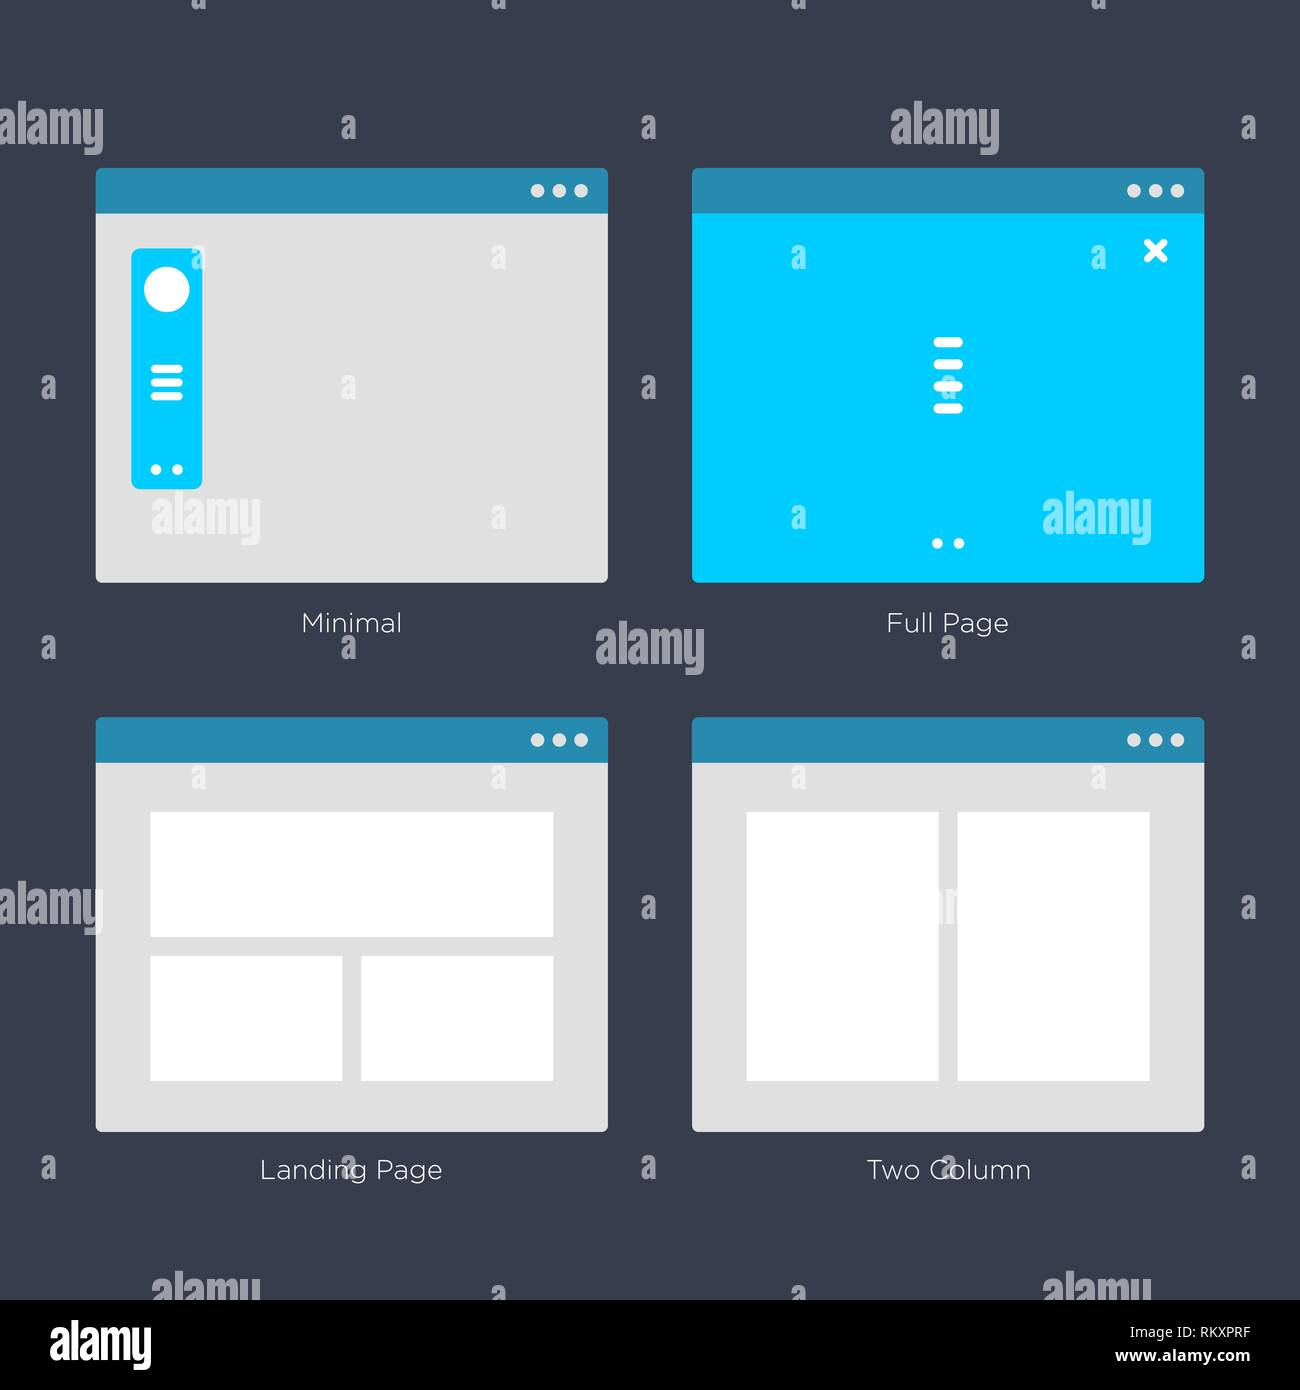 Website Wire frame Layouts UI Kits for Site map and Ux Design - Stock Image